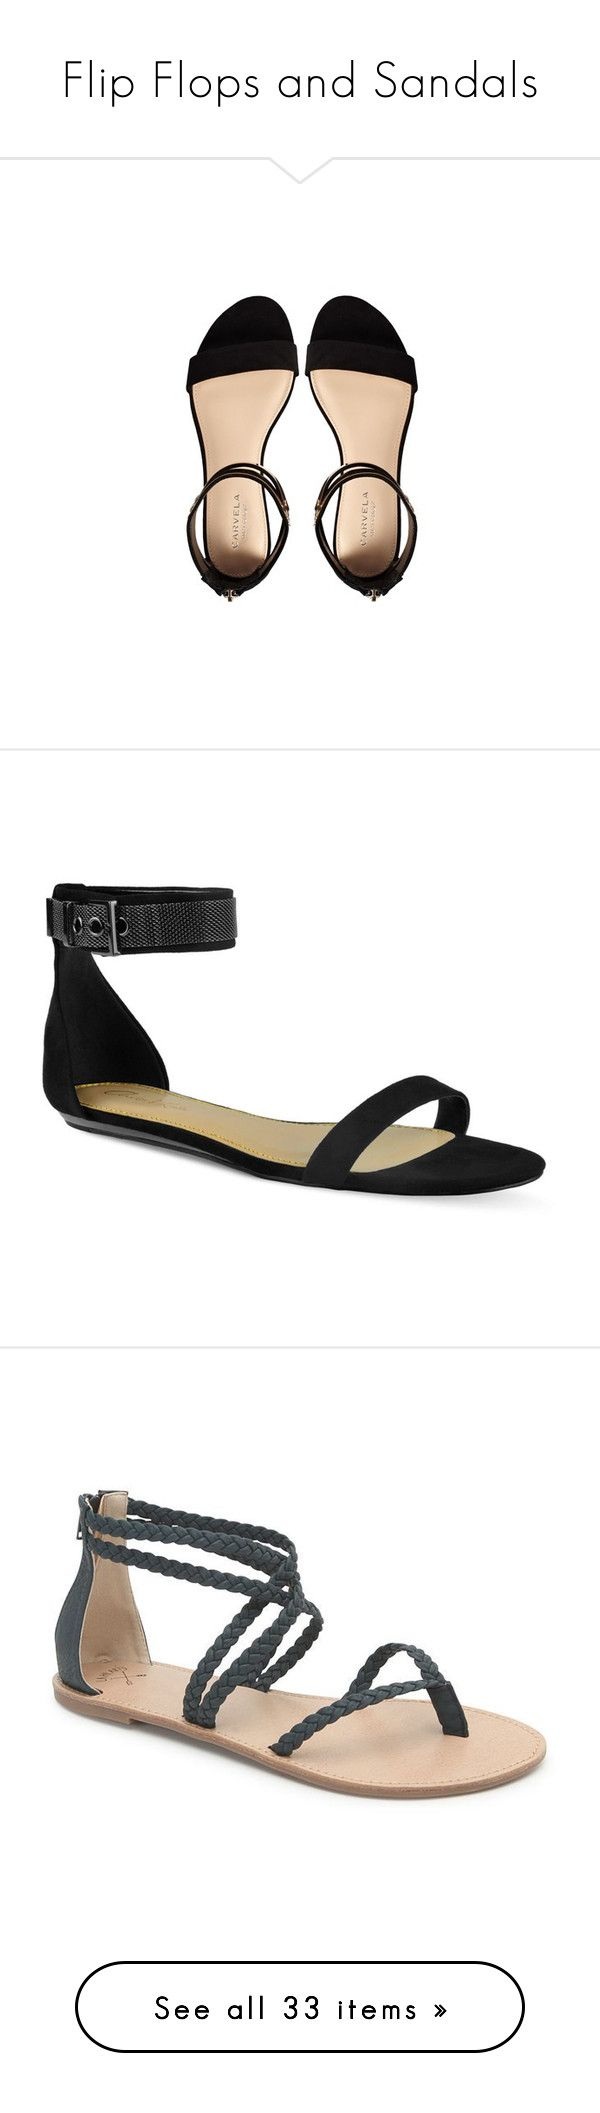 """Flip Flops and Sandals"" by esther-rosa ❤ liked on Polyvore featuring shoes, sandals, flats, sapato, flats sandals, flat heel shoes, flat sandals, carvela shoes, flat shoes and sapatos"